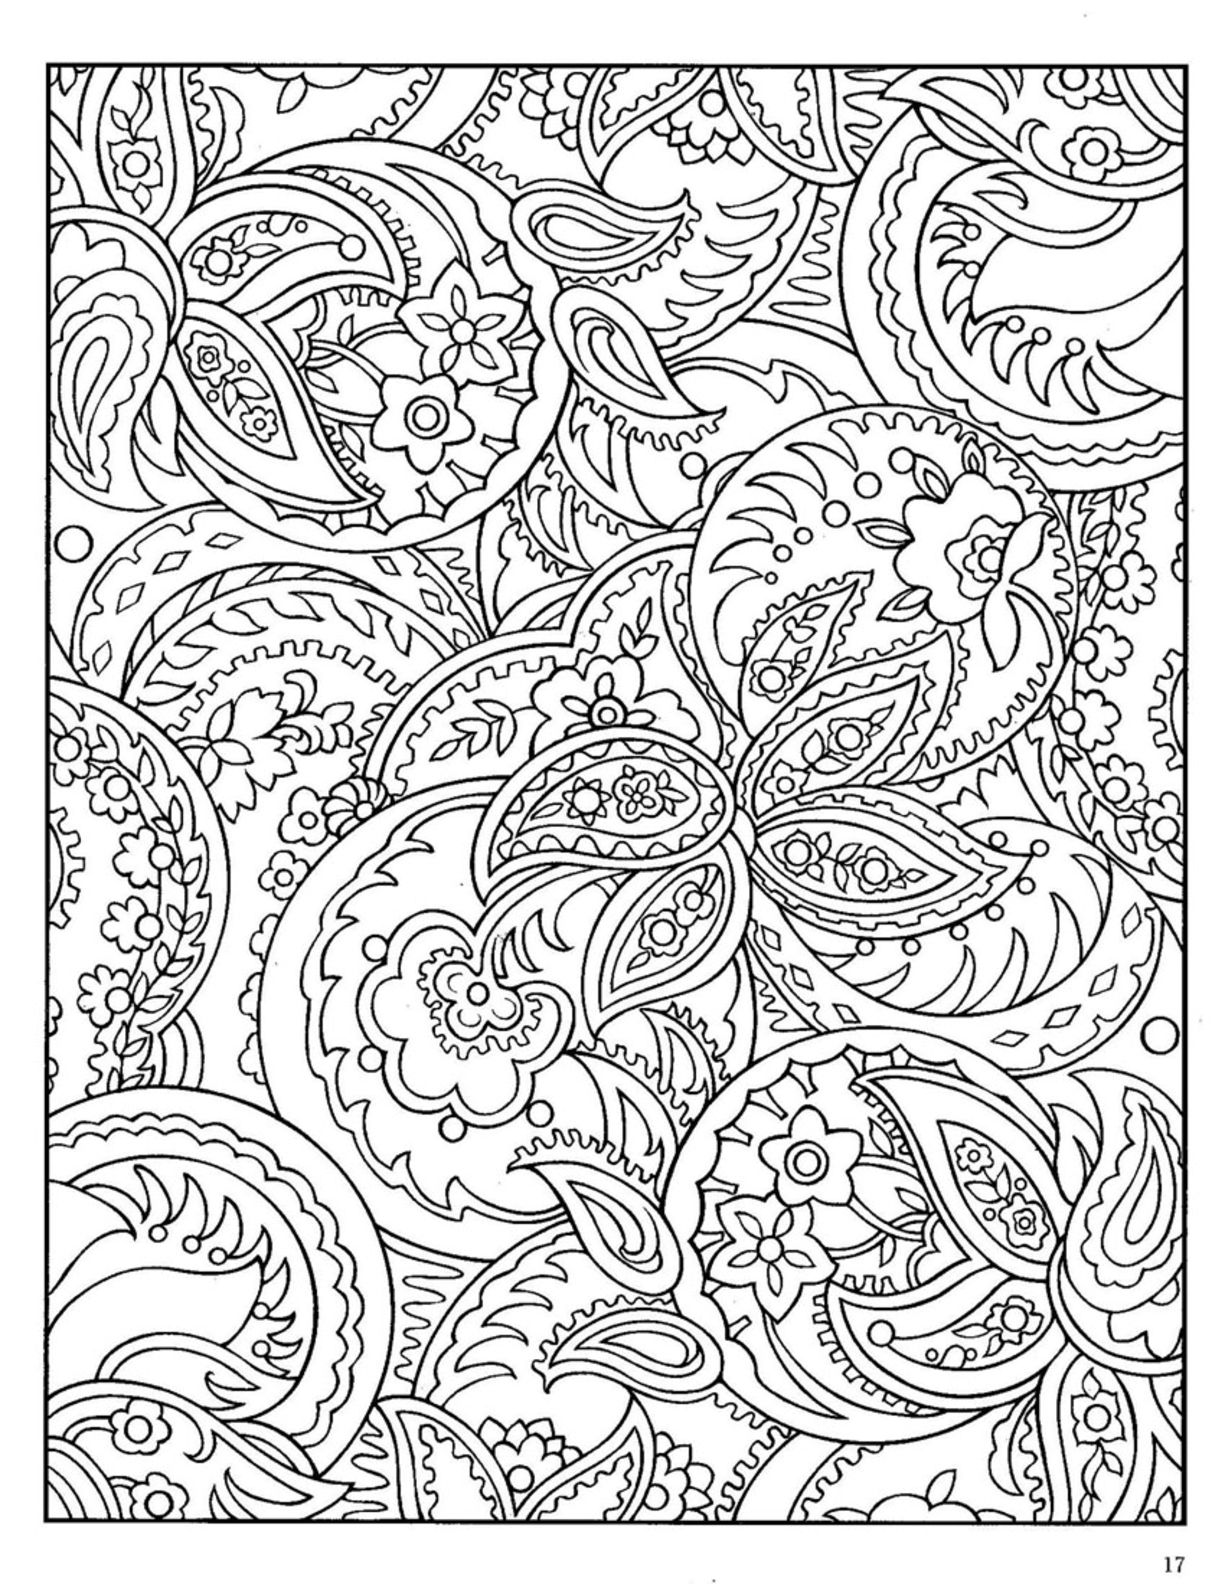 zentangle coloring pages for adults - photo#5